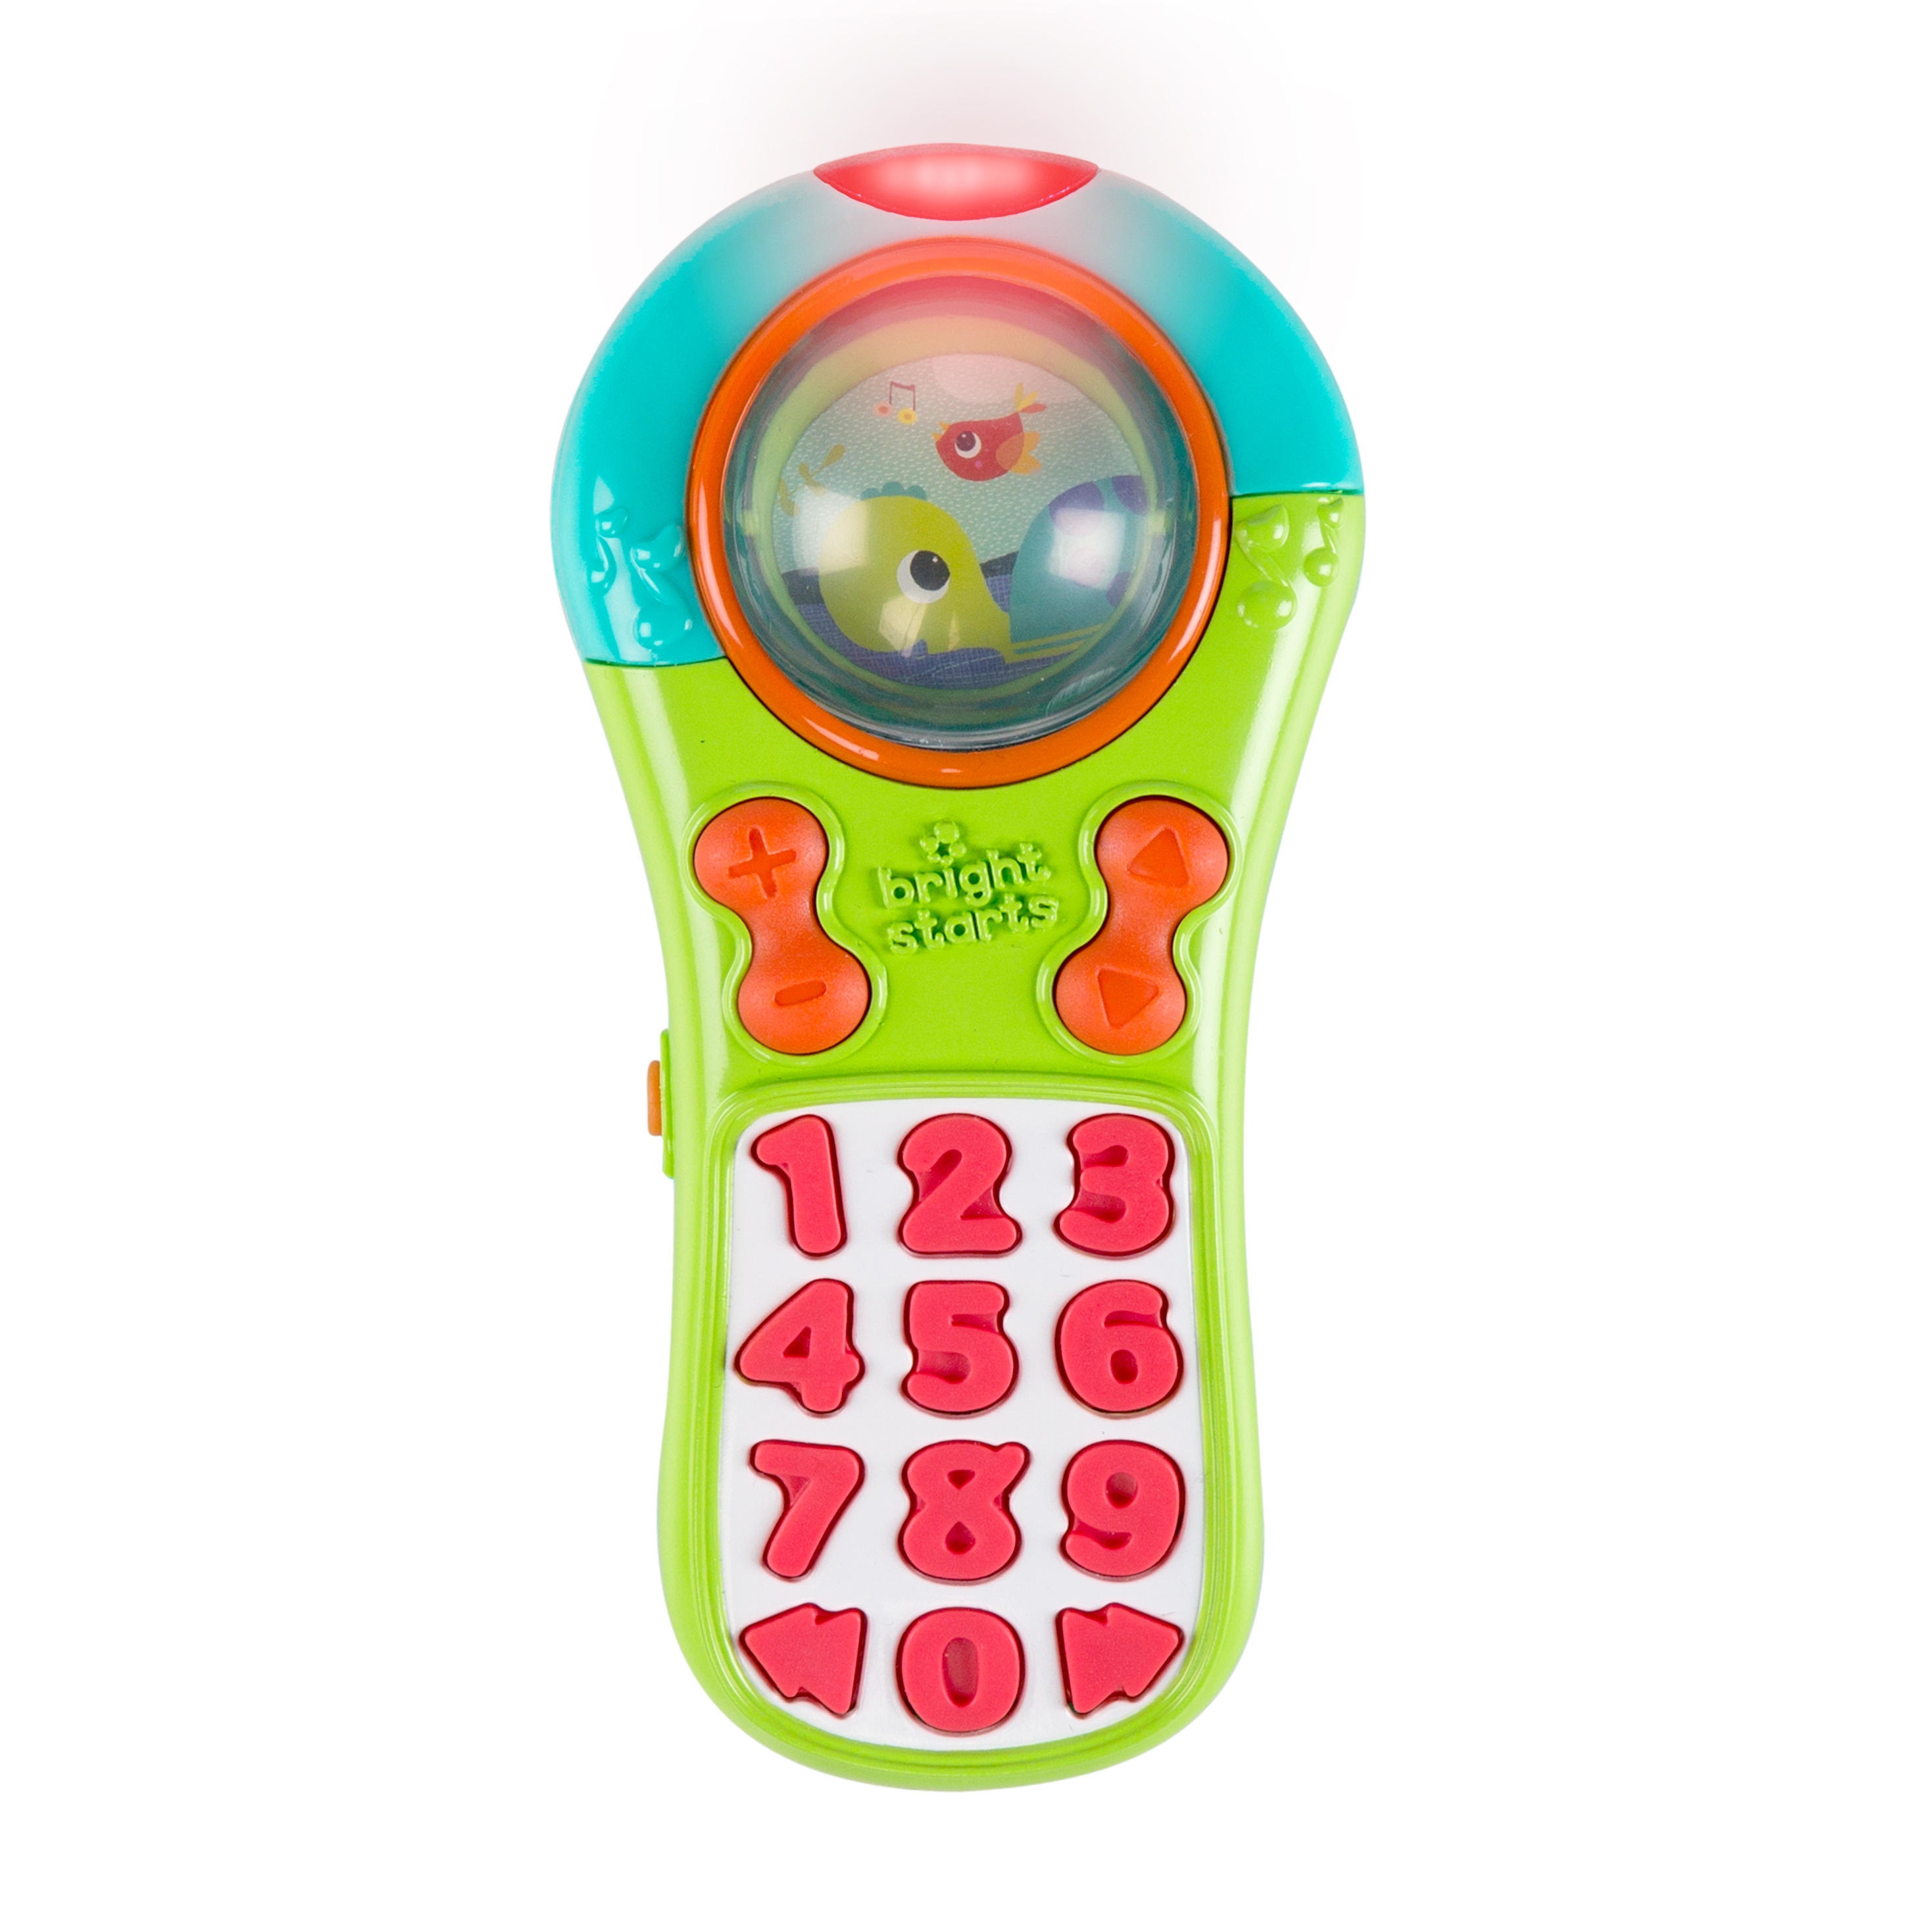 Bright Starts Click & Giggle Remote Toy by Kids II